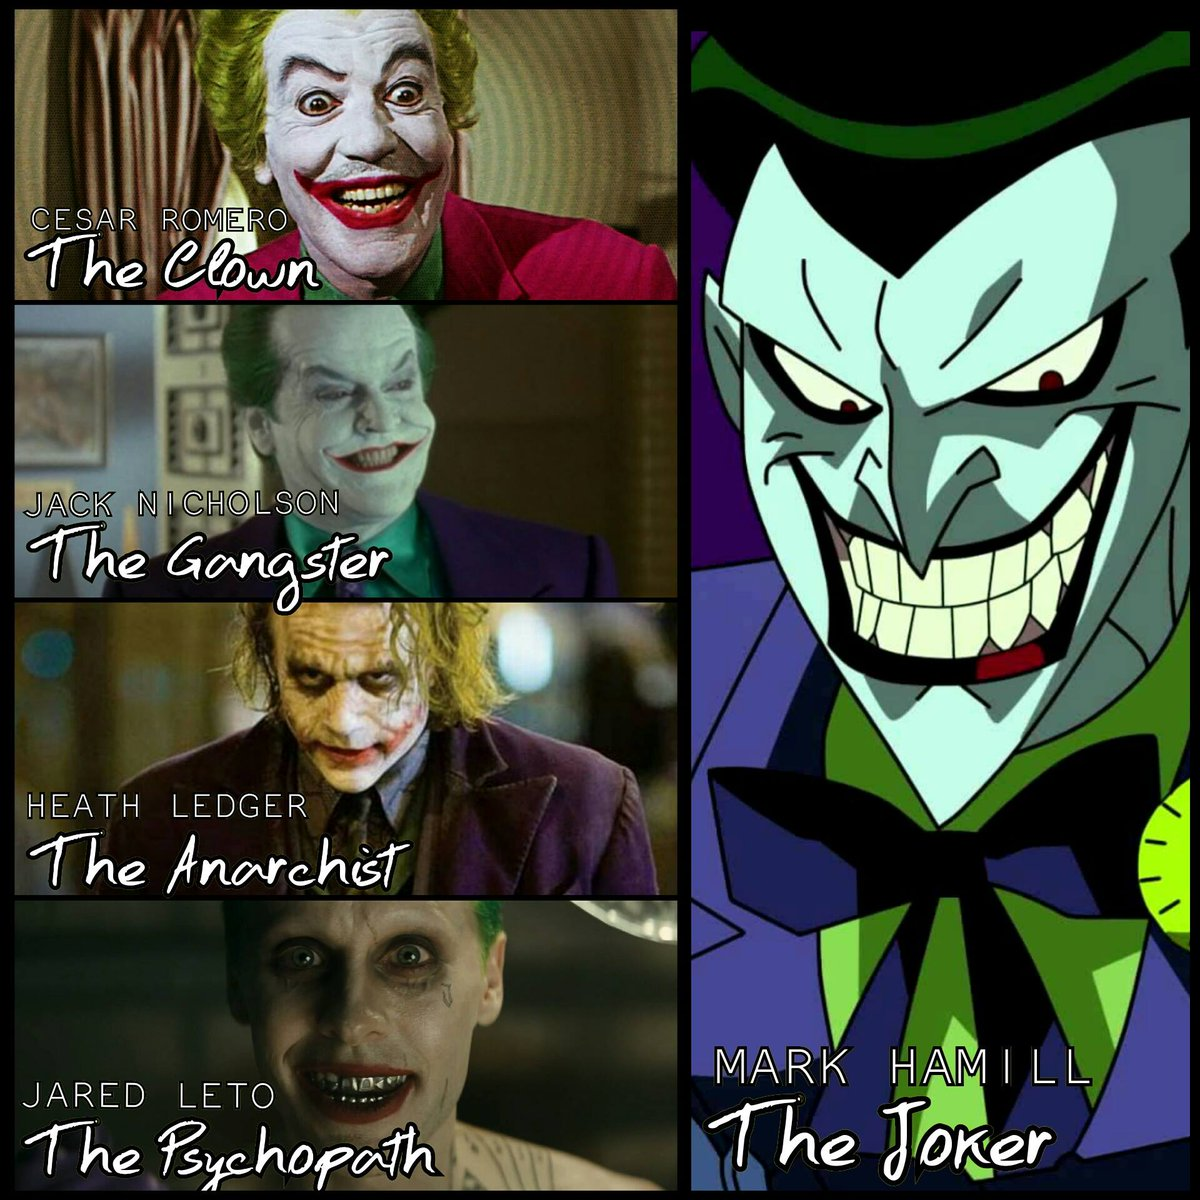 Love this. RT @RuthanneReid: I could not agree with this more. #DC #TheJoker http://t.co/mRgfmuyUh9